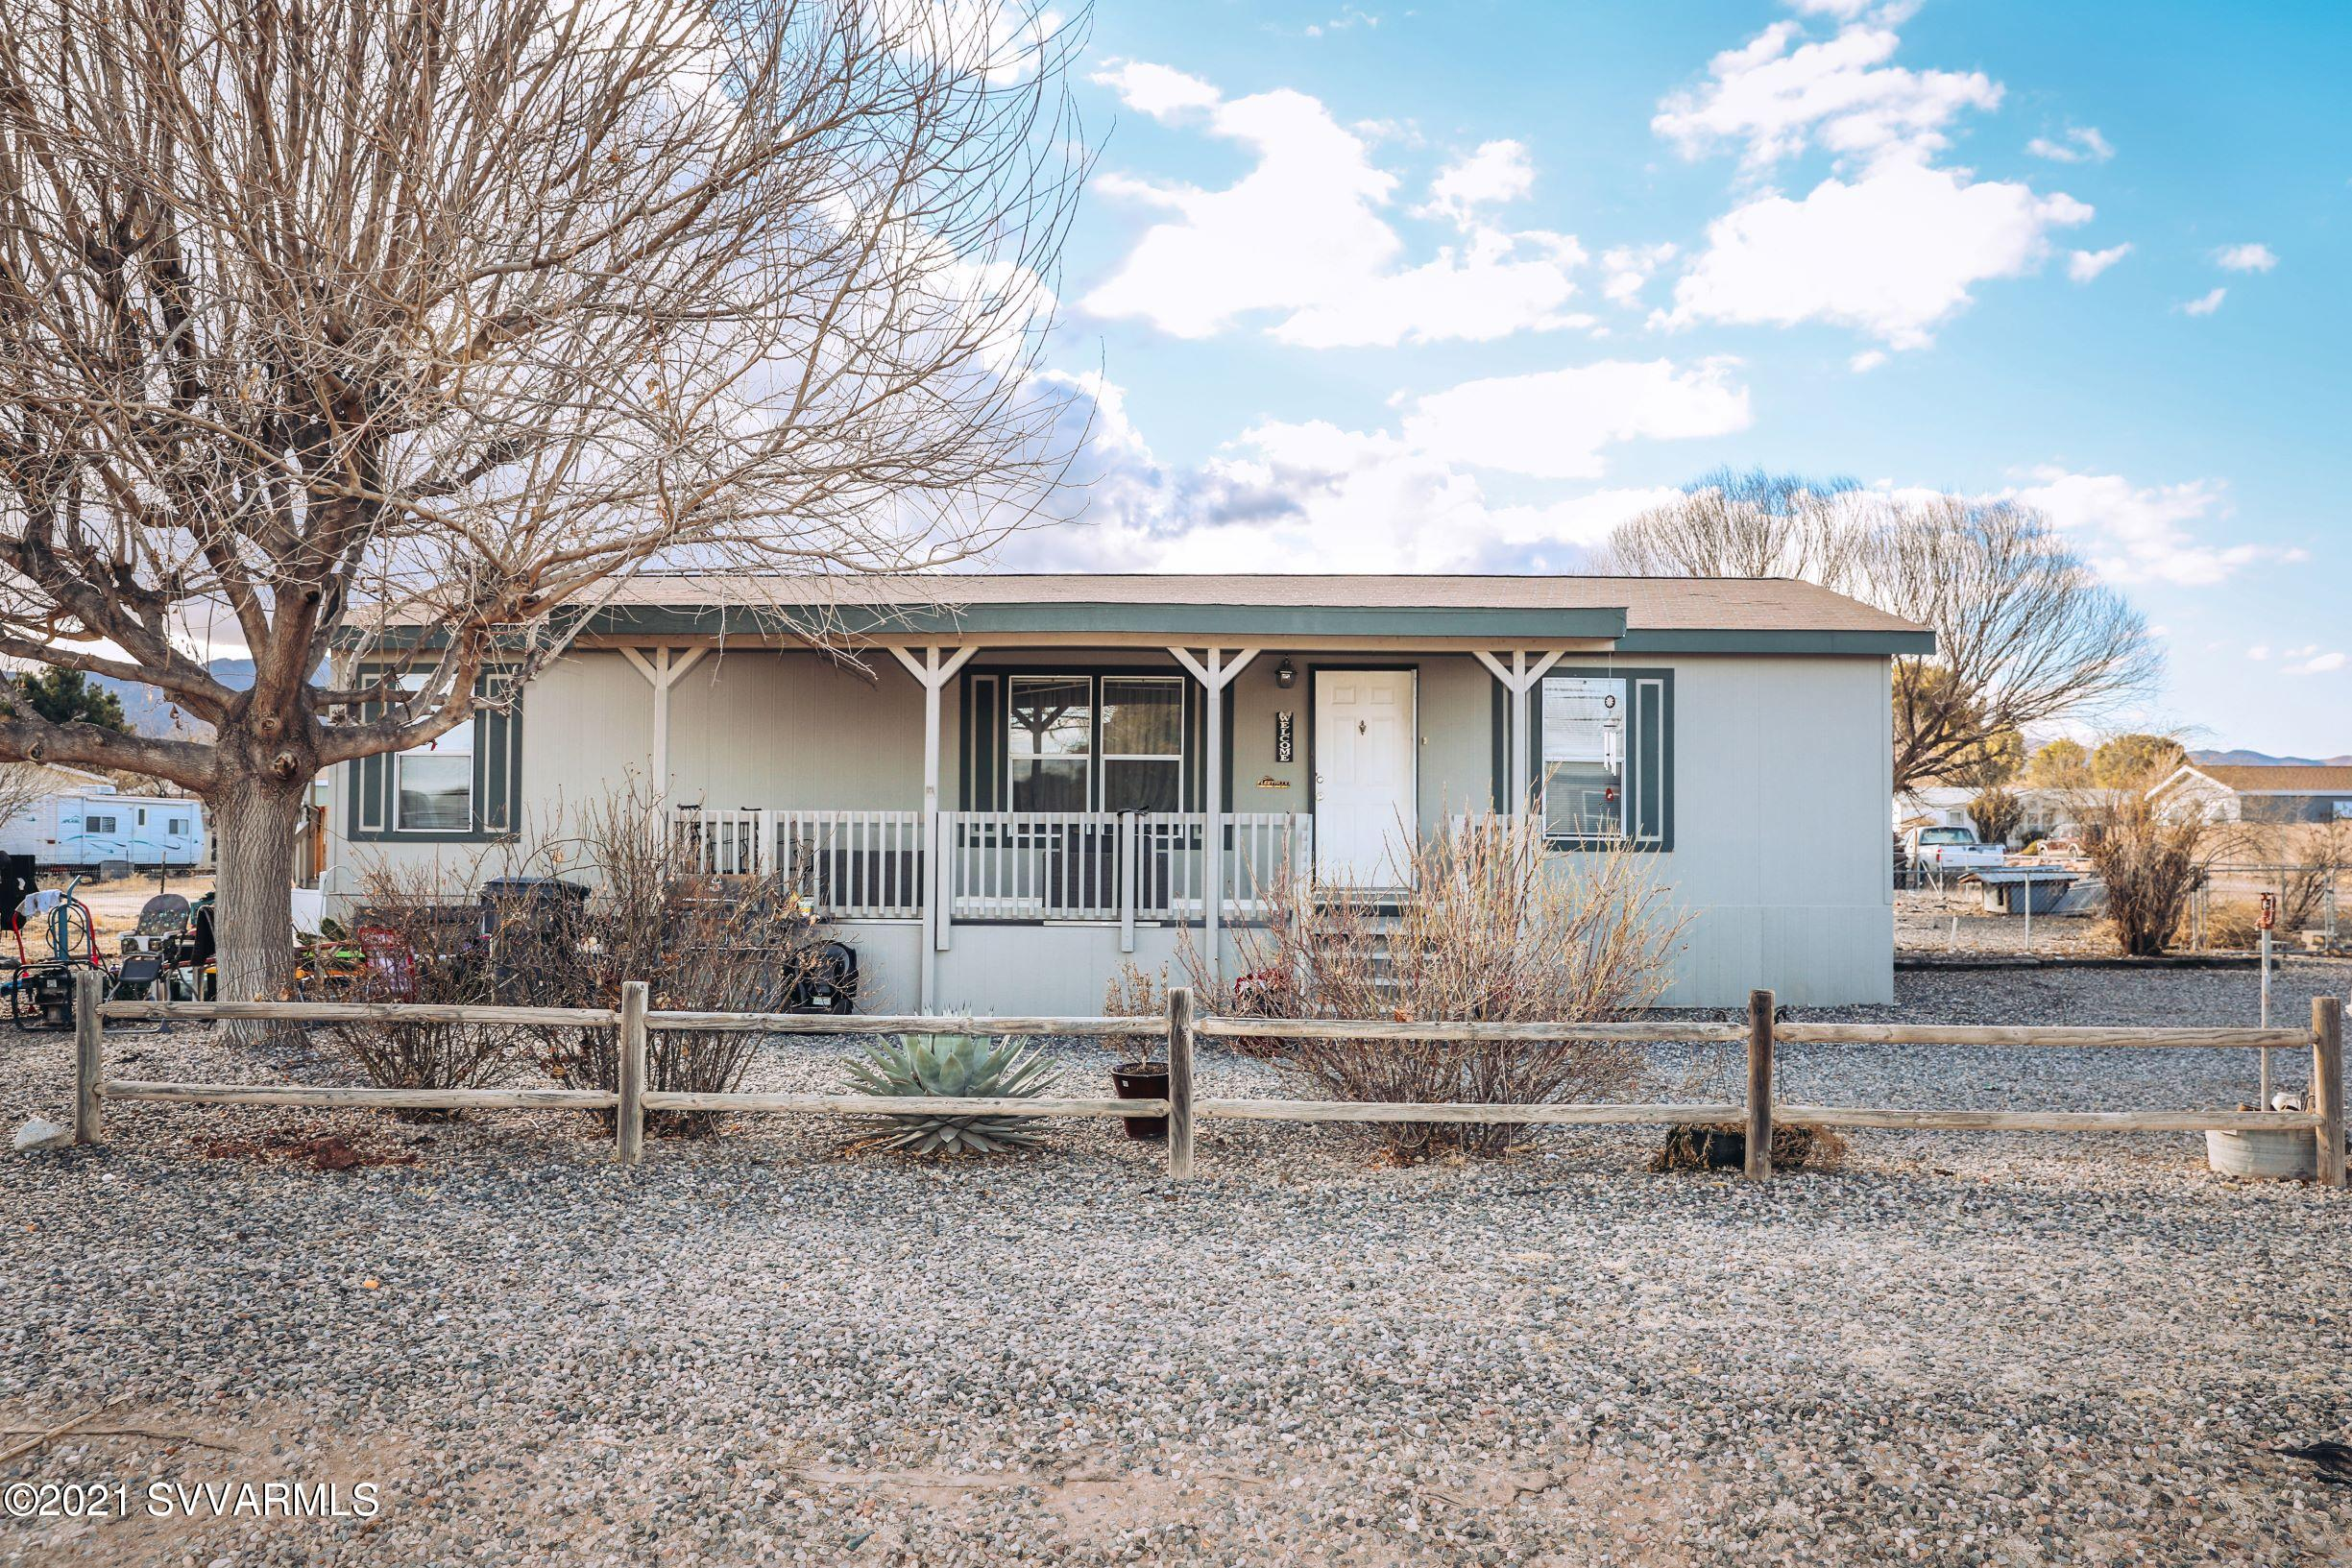 2050 S Wagon Master Rd Cottonwood, AZ 86326